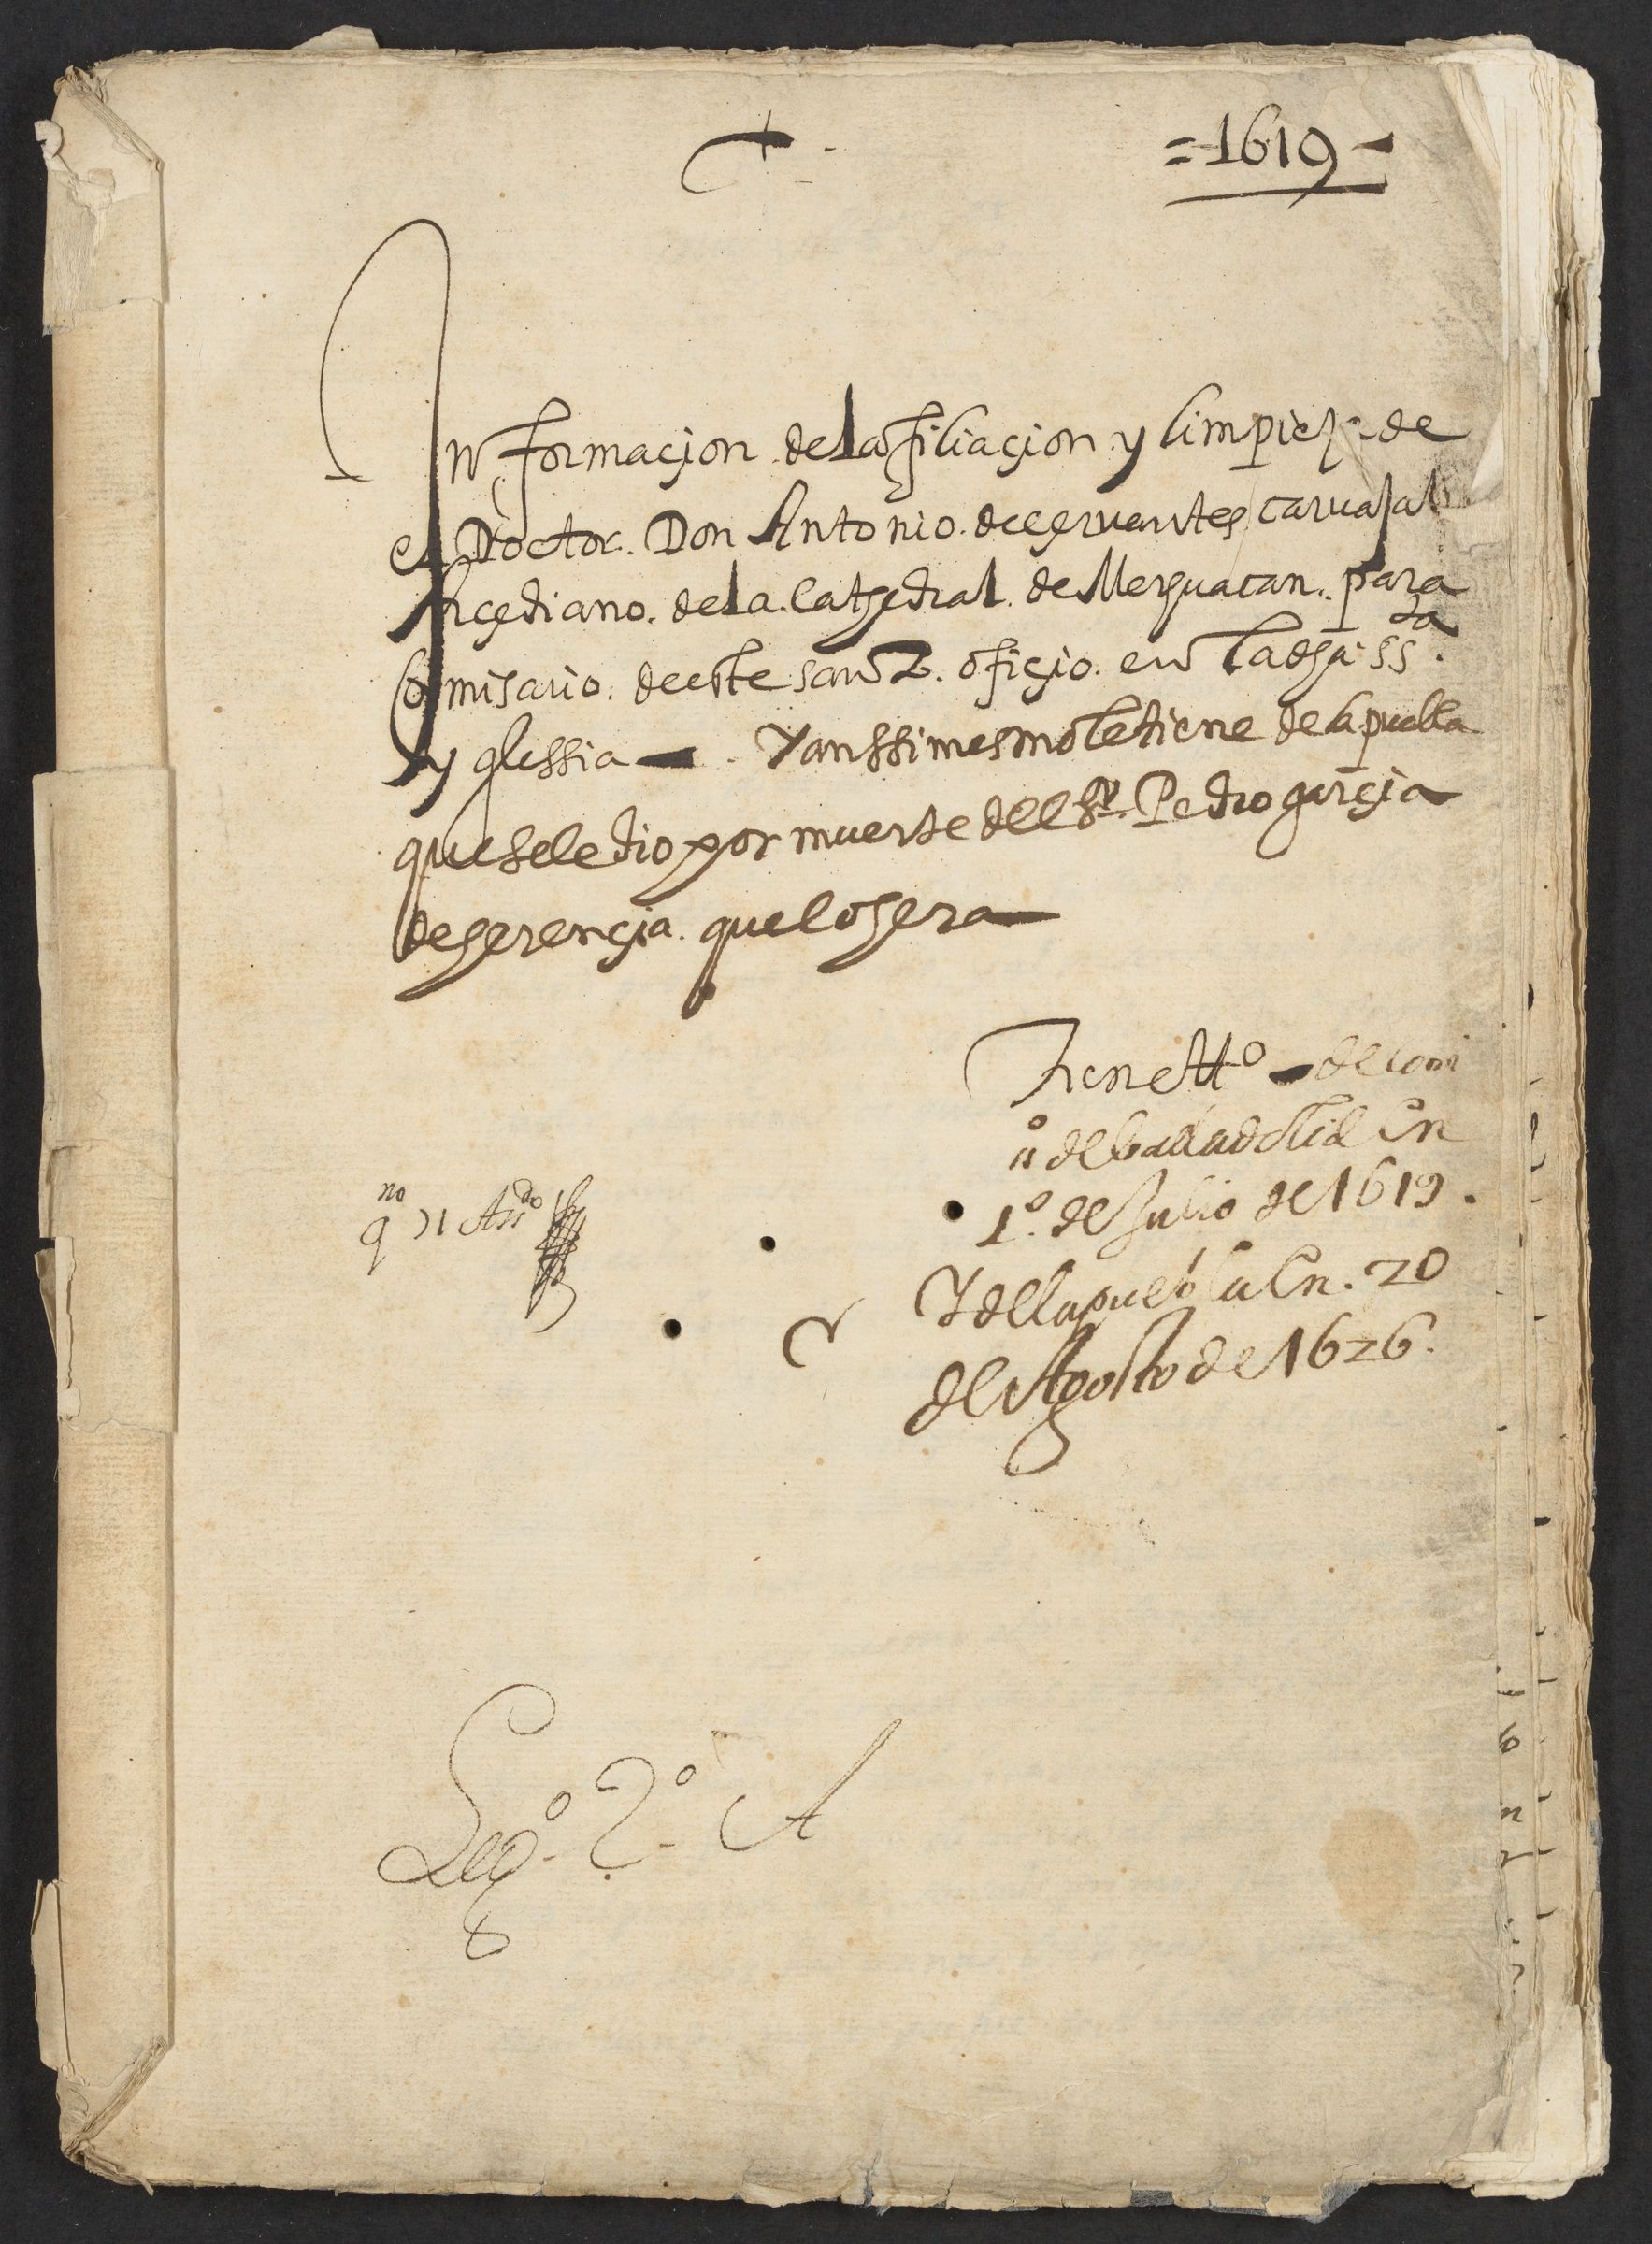 "Inquest into the filiation and ""limpieza de sangre"" of Doctor Don Antonio de Cervantes,1619."